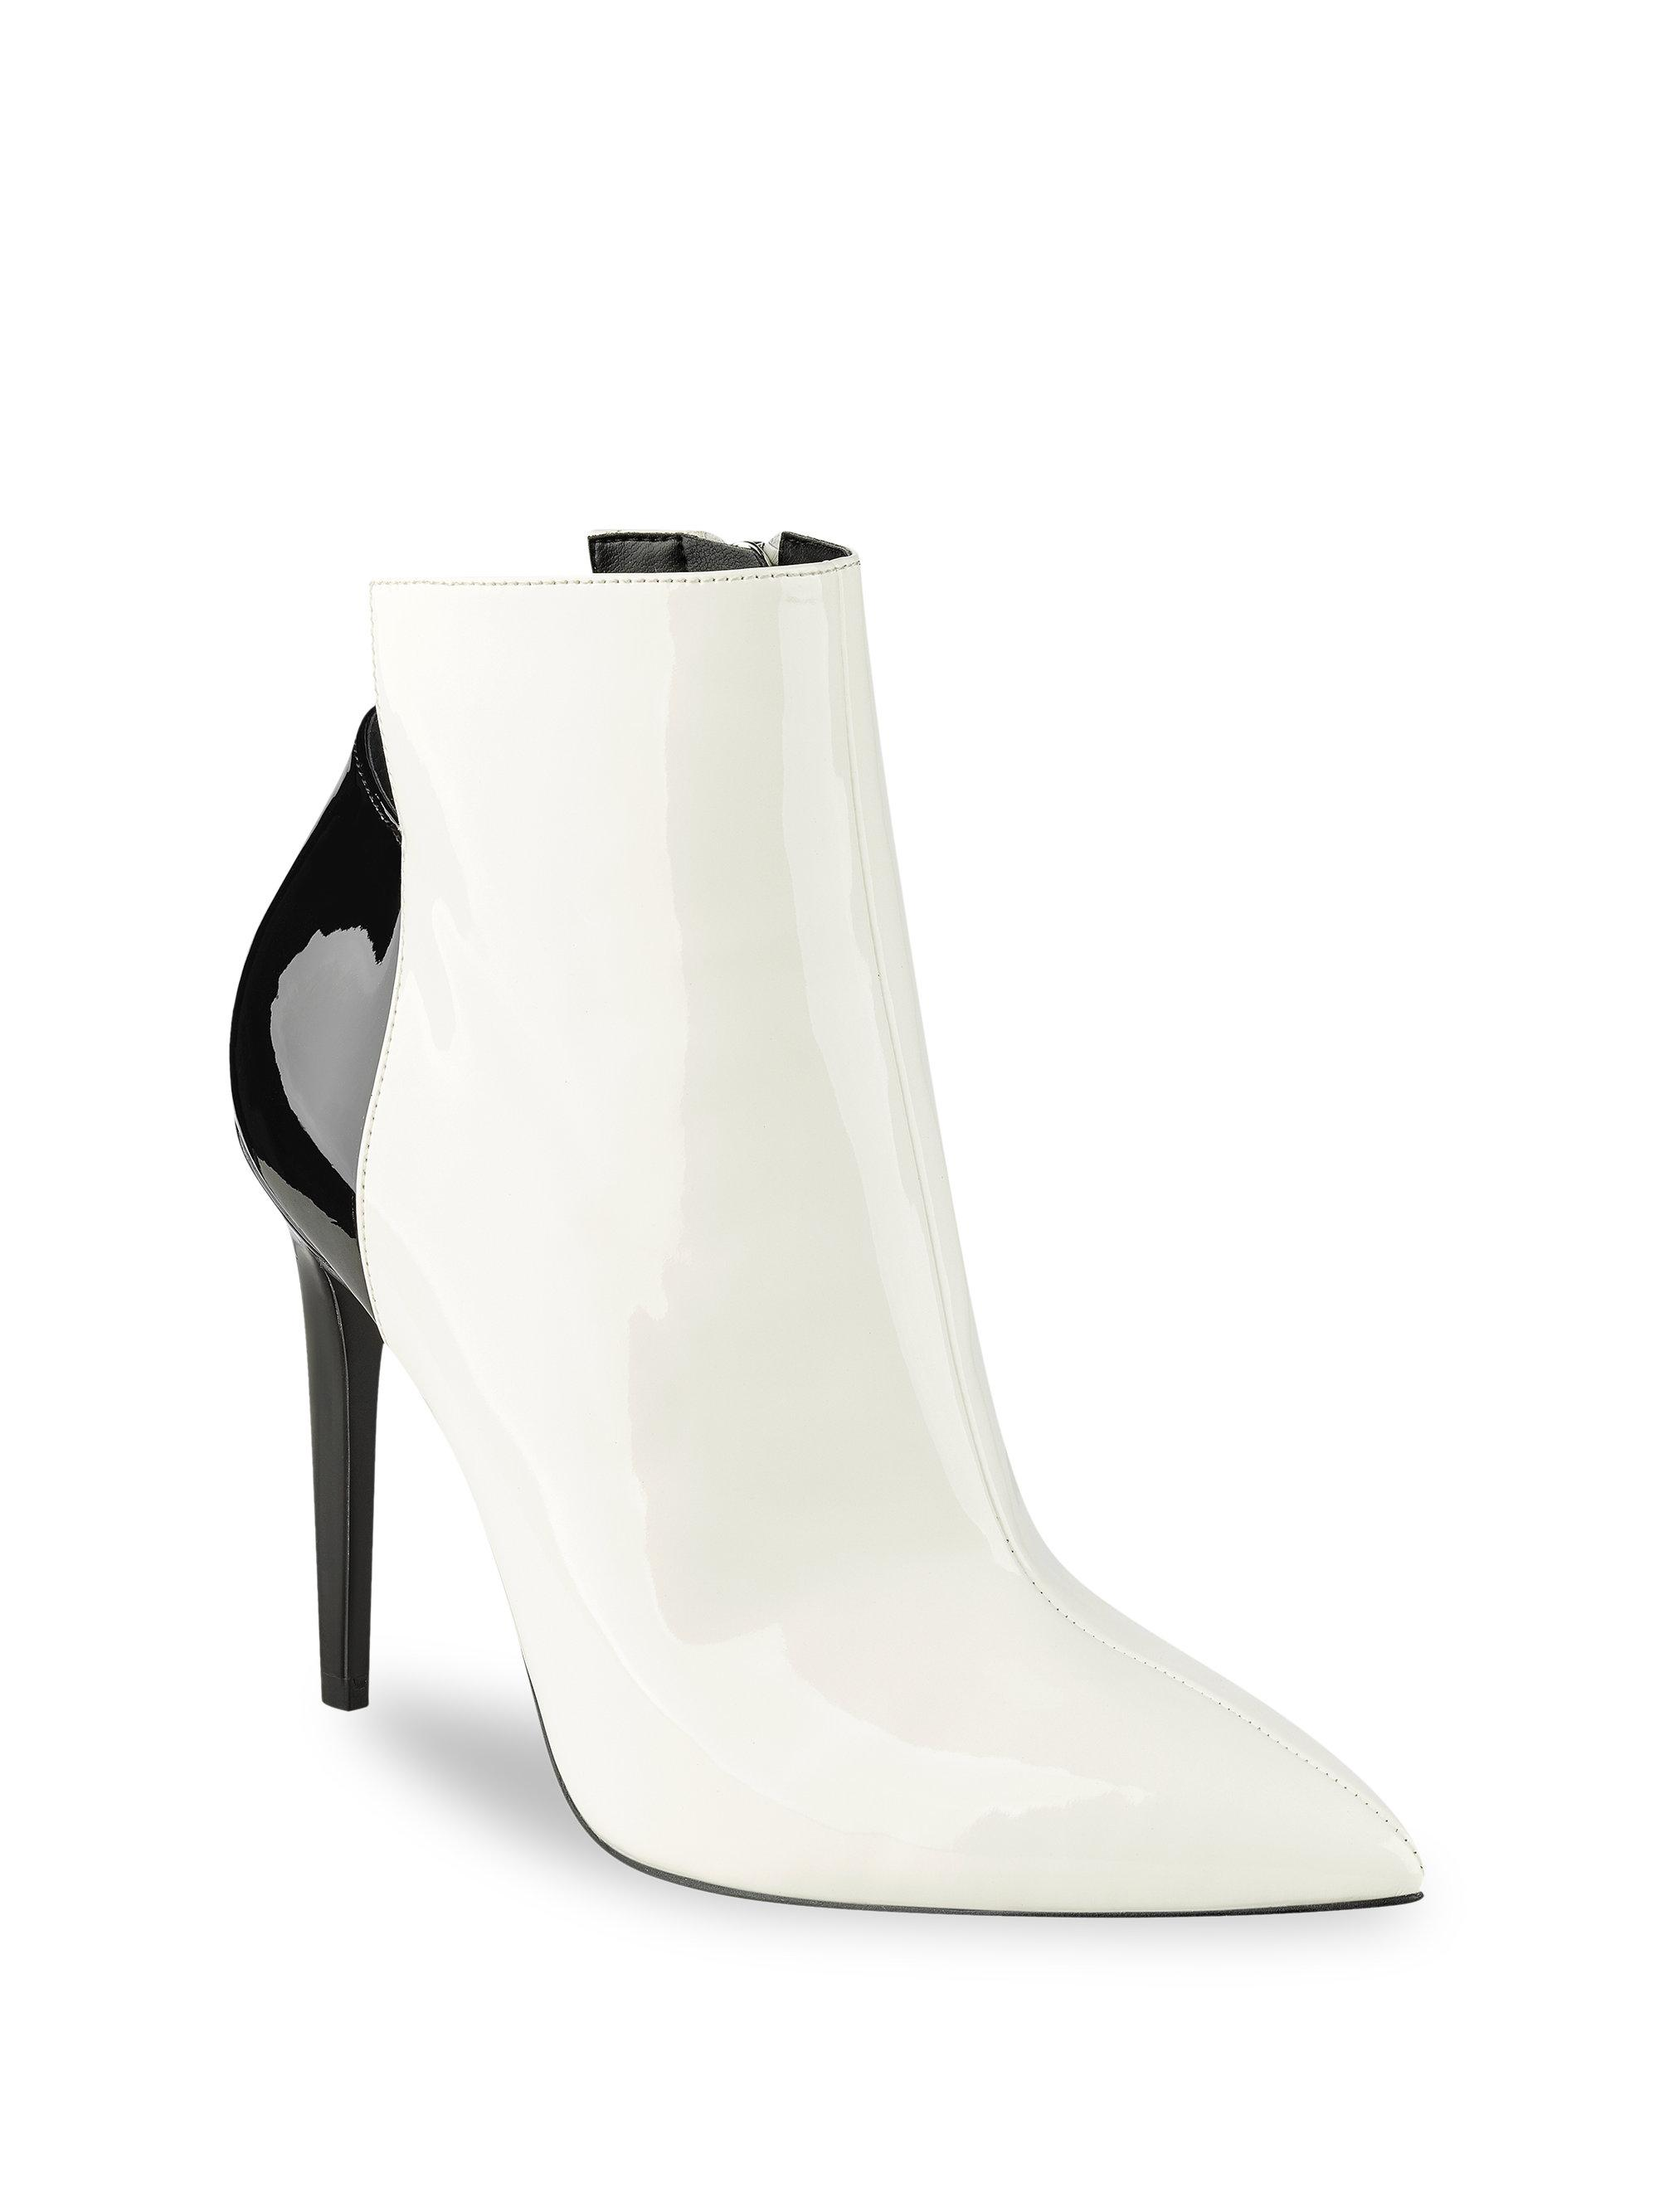 Kendall & Kylie Ariana Cutout Shaft Bootie (Women's)